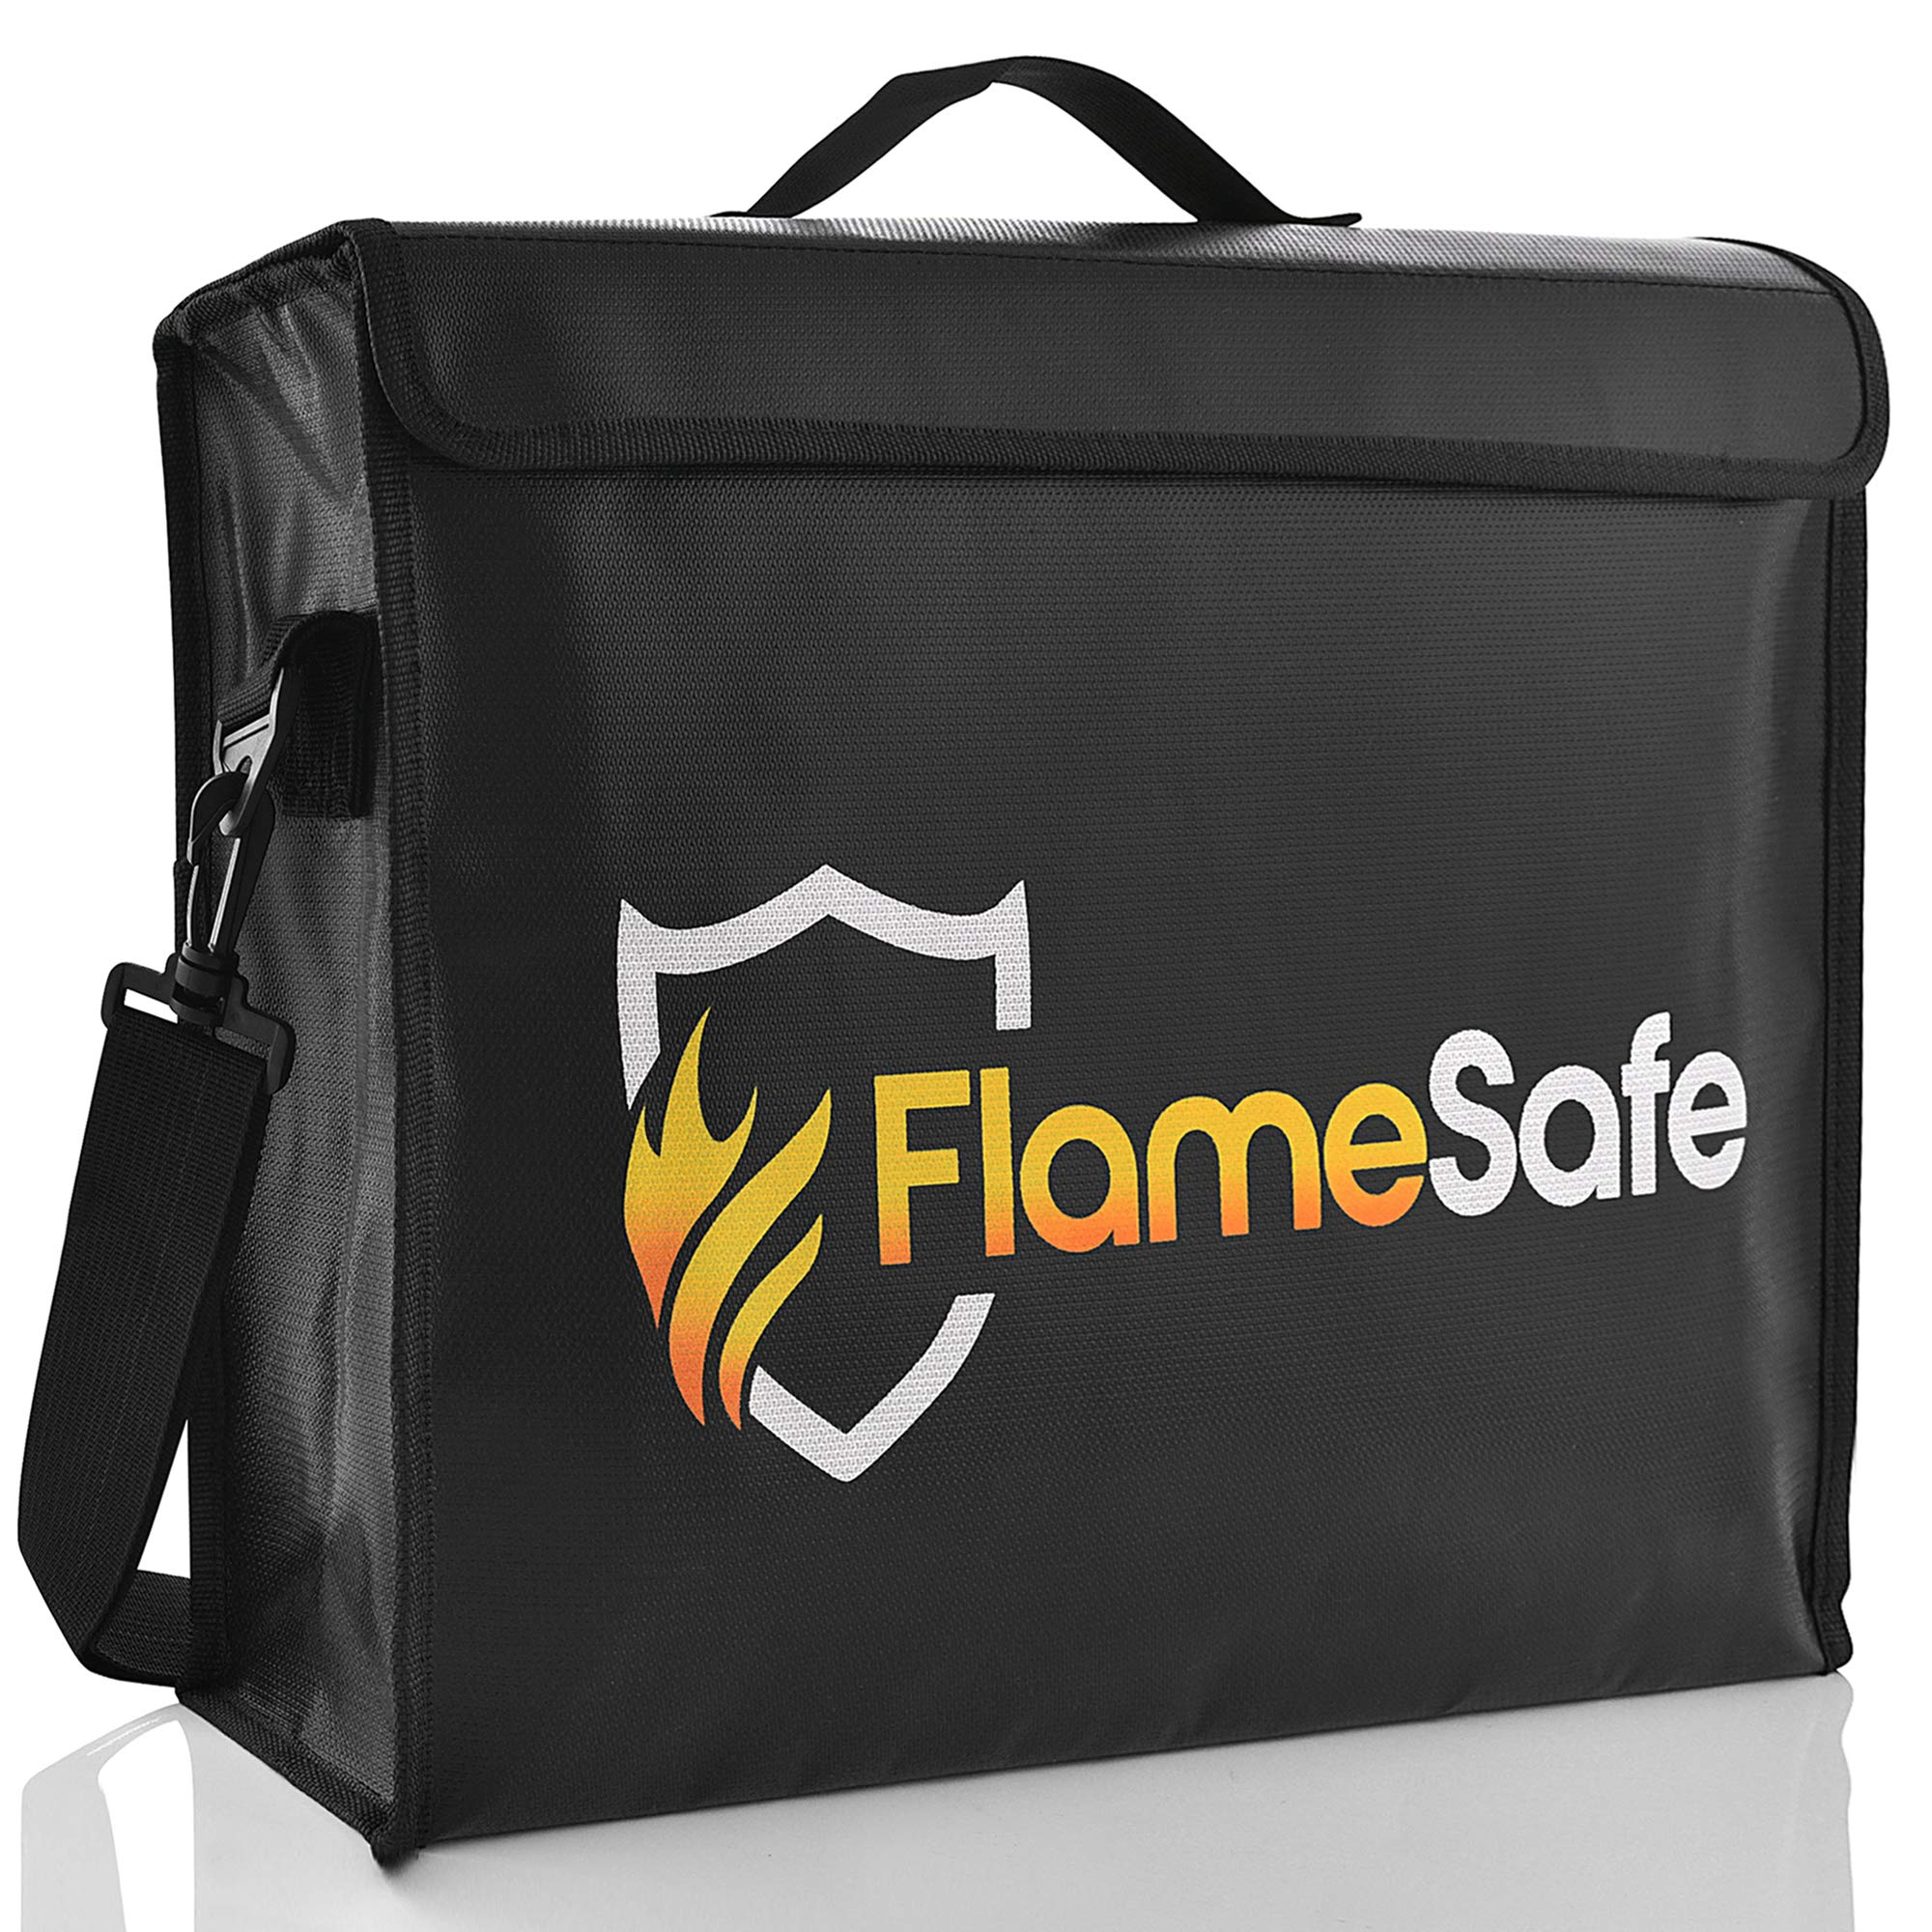 FlameSafe XL Premium Fireproof Document Bag (16''x12''x 4'') New Non-Itch Triple Layer Silicone Fiberglass Protection With Upgraded Heavy Duty Zipper. Fireproof Waterproof Document Holder And Money Safe